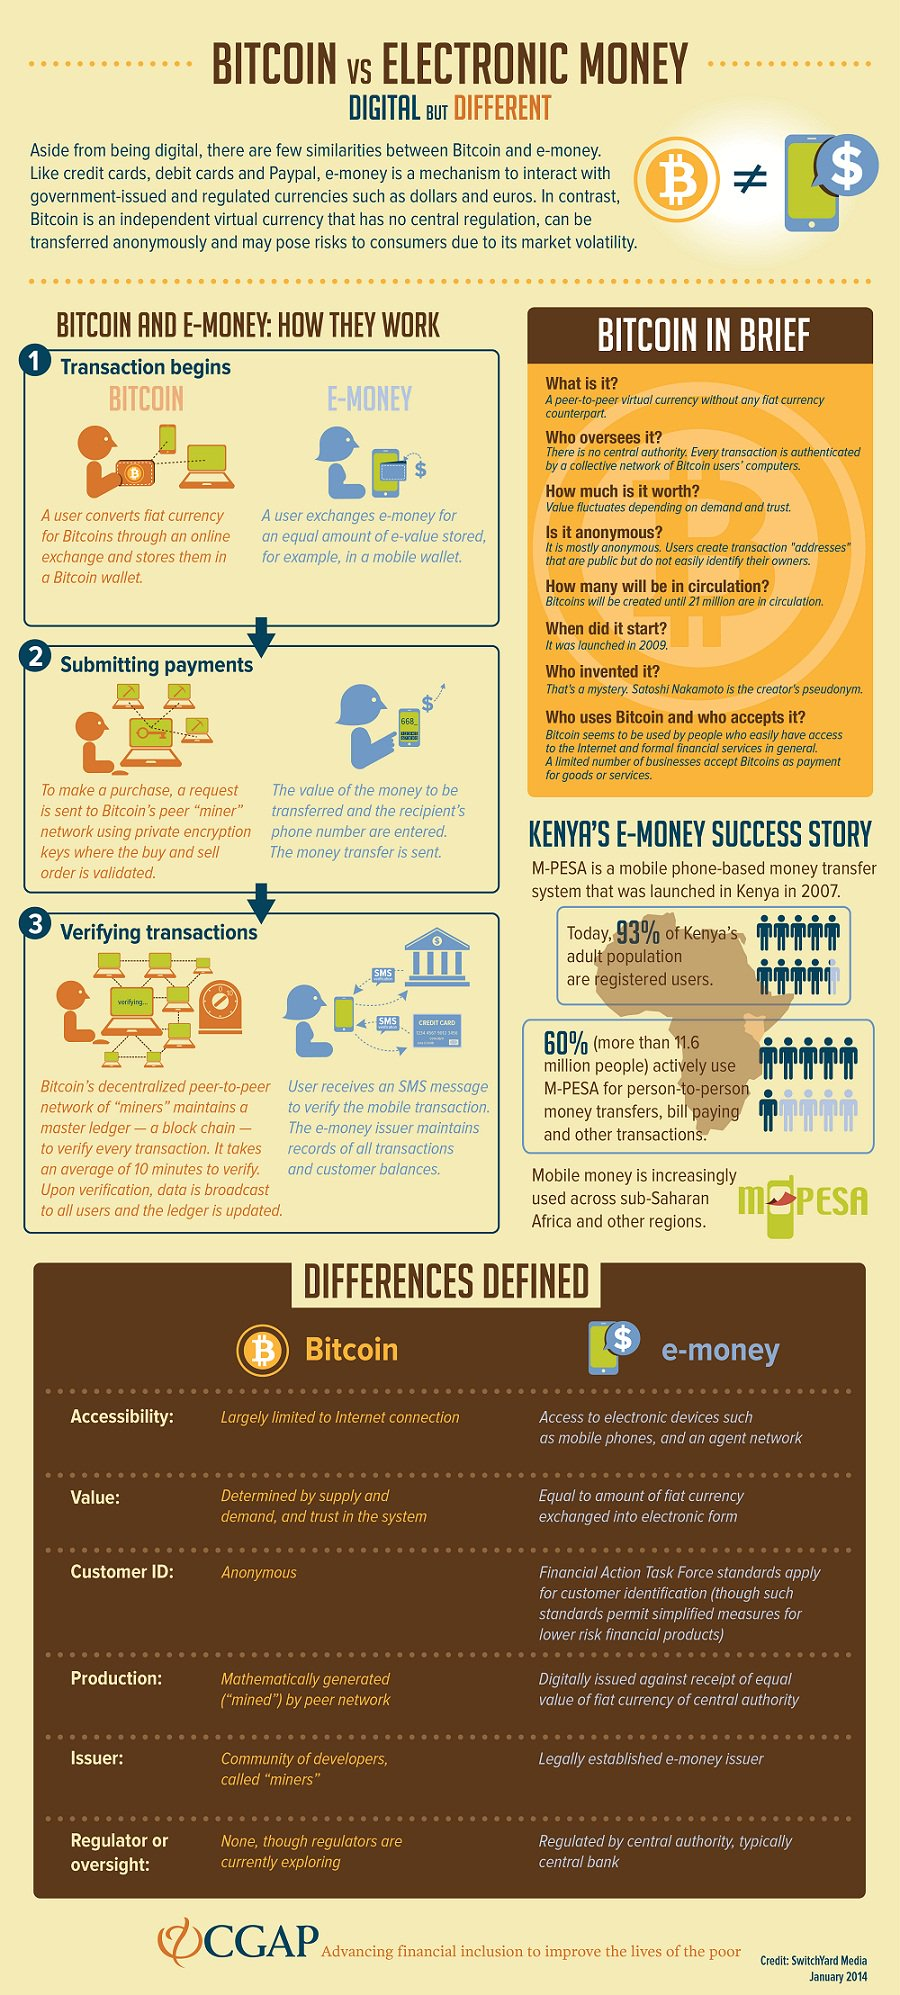 Bitcoin vs. Electronic Money infographic